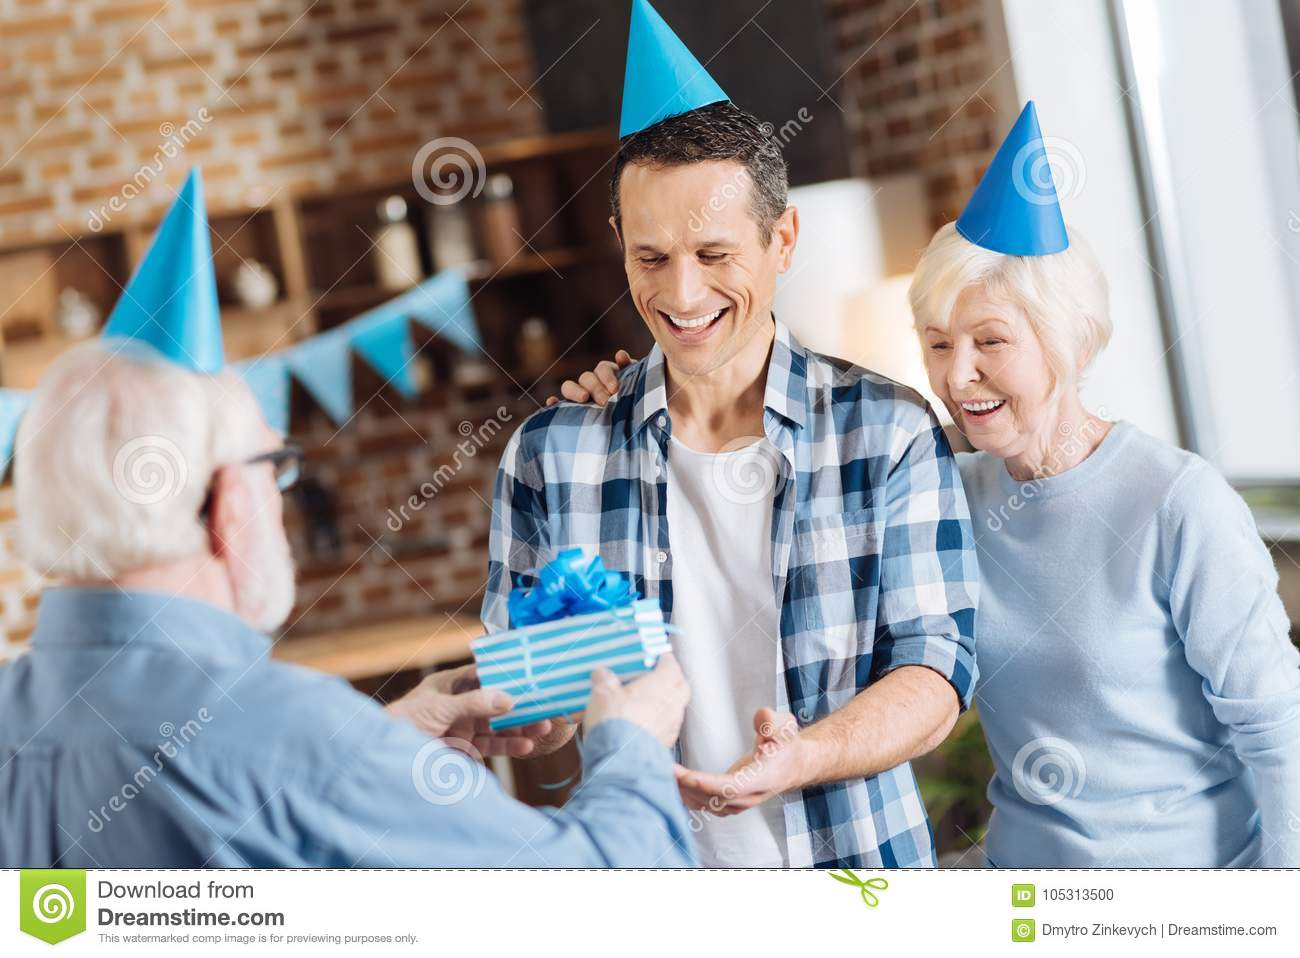 Elderly Man Giving A Birthday Gift To His Adult Son